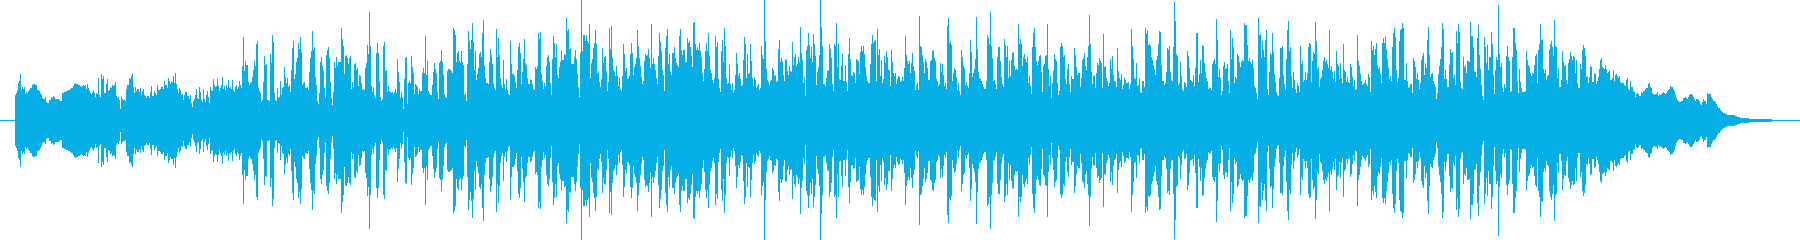 It 's like the last scene of a drama's reproduced waveform